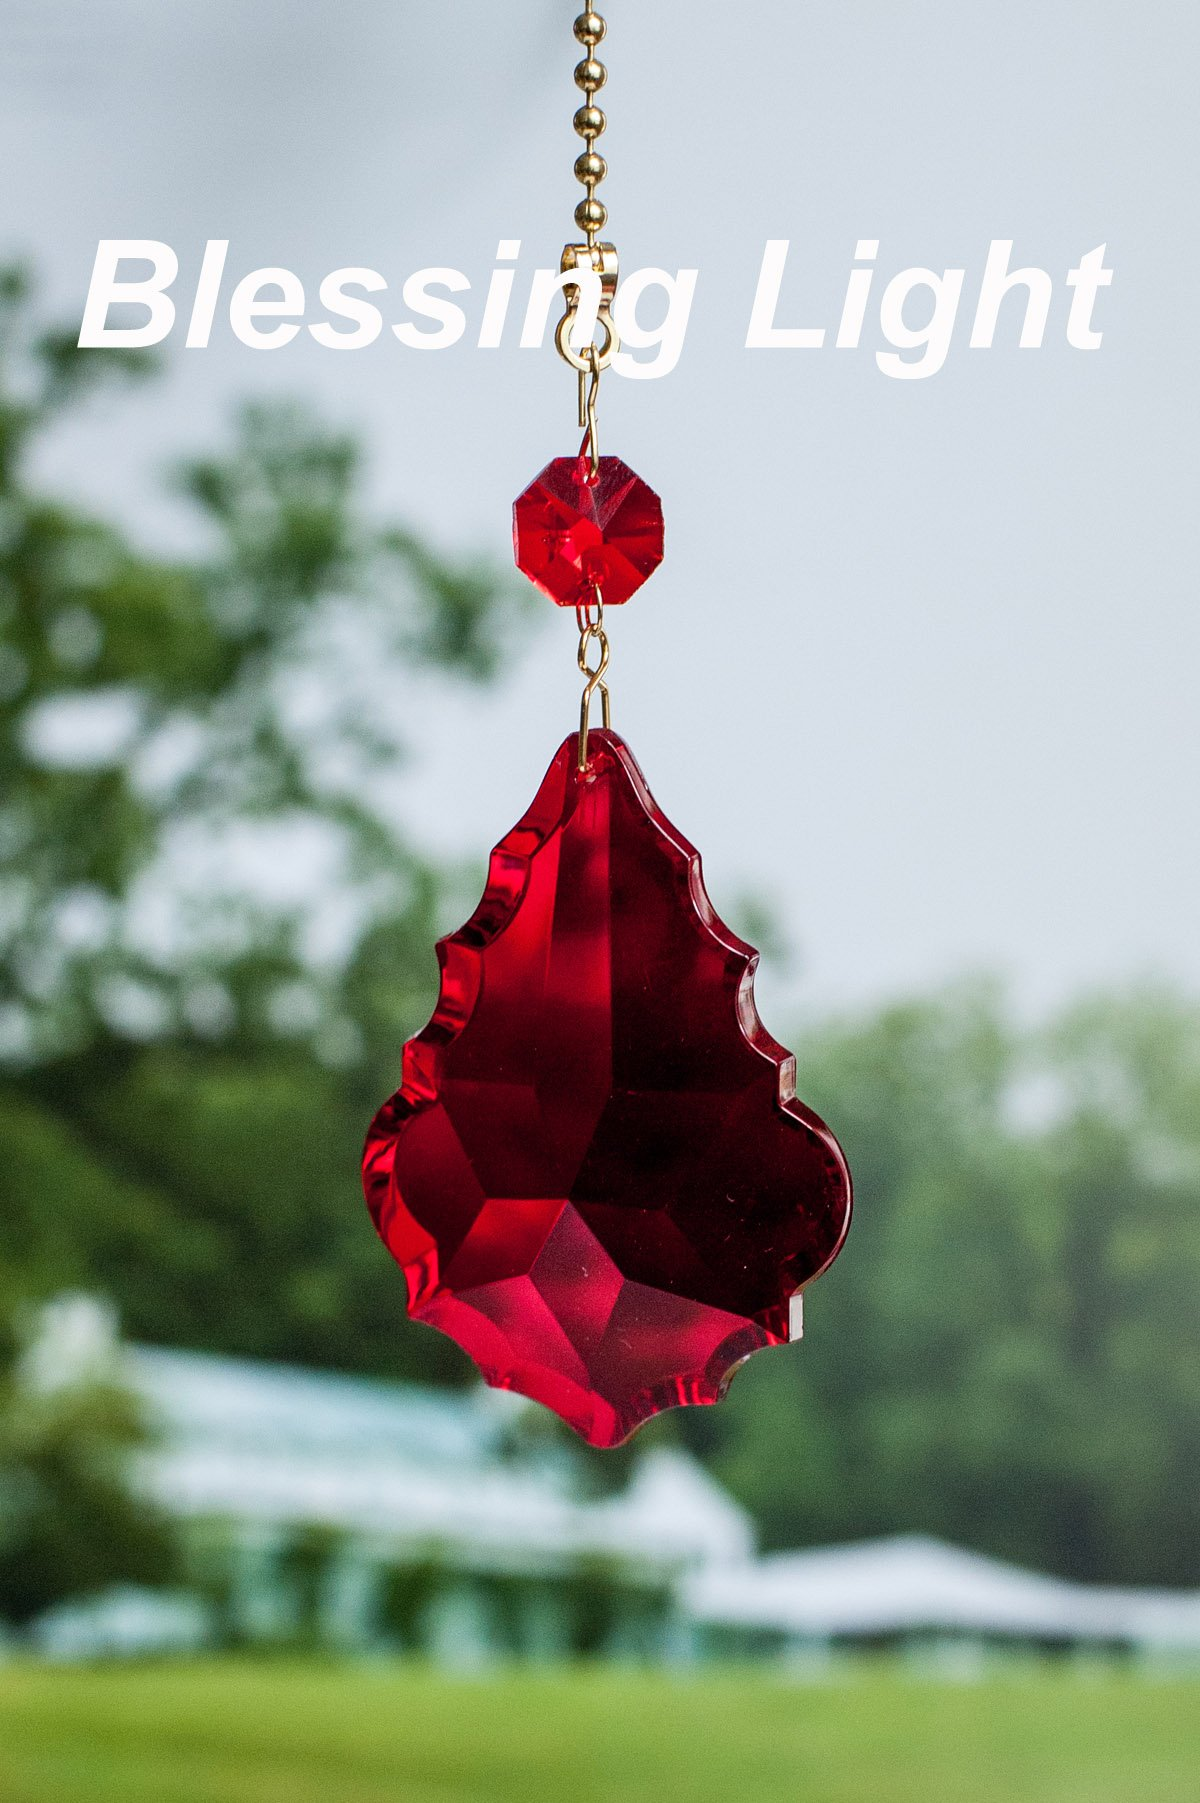 Set of 2 Red Acrylic Crystal Baroque Leaf Ceiling Lighting Fan Pull Chains by Blessinglight USA